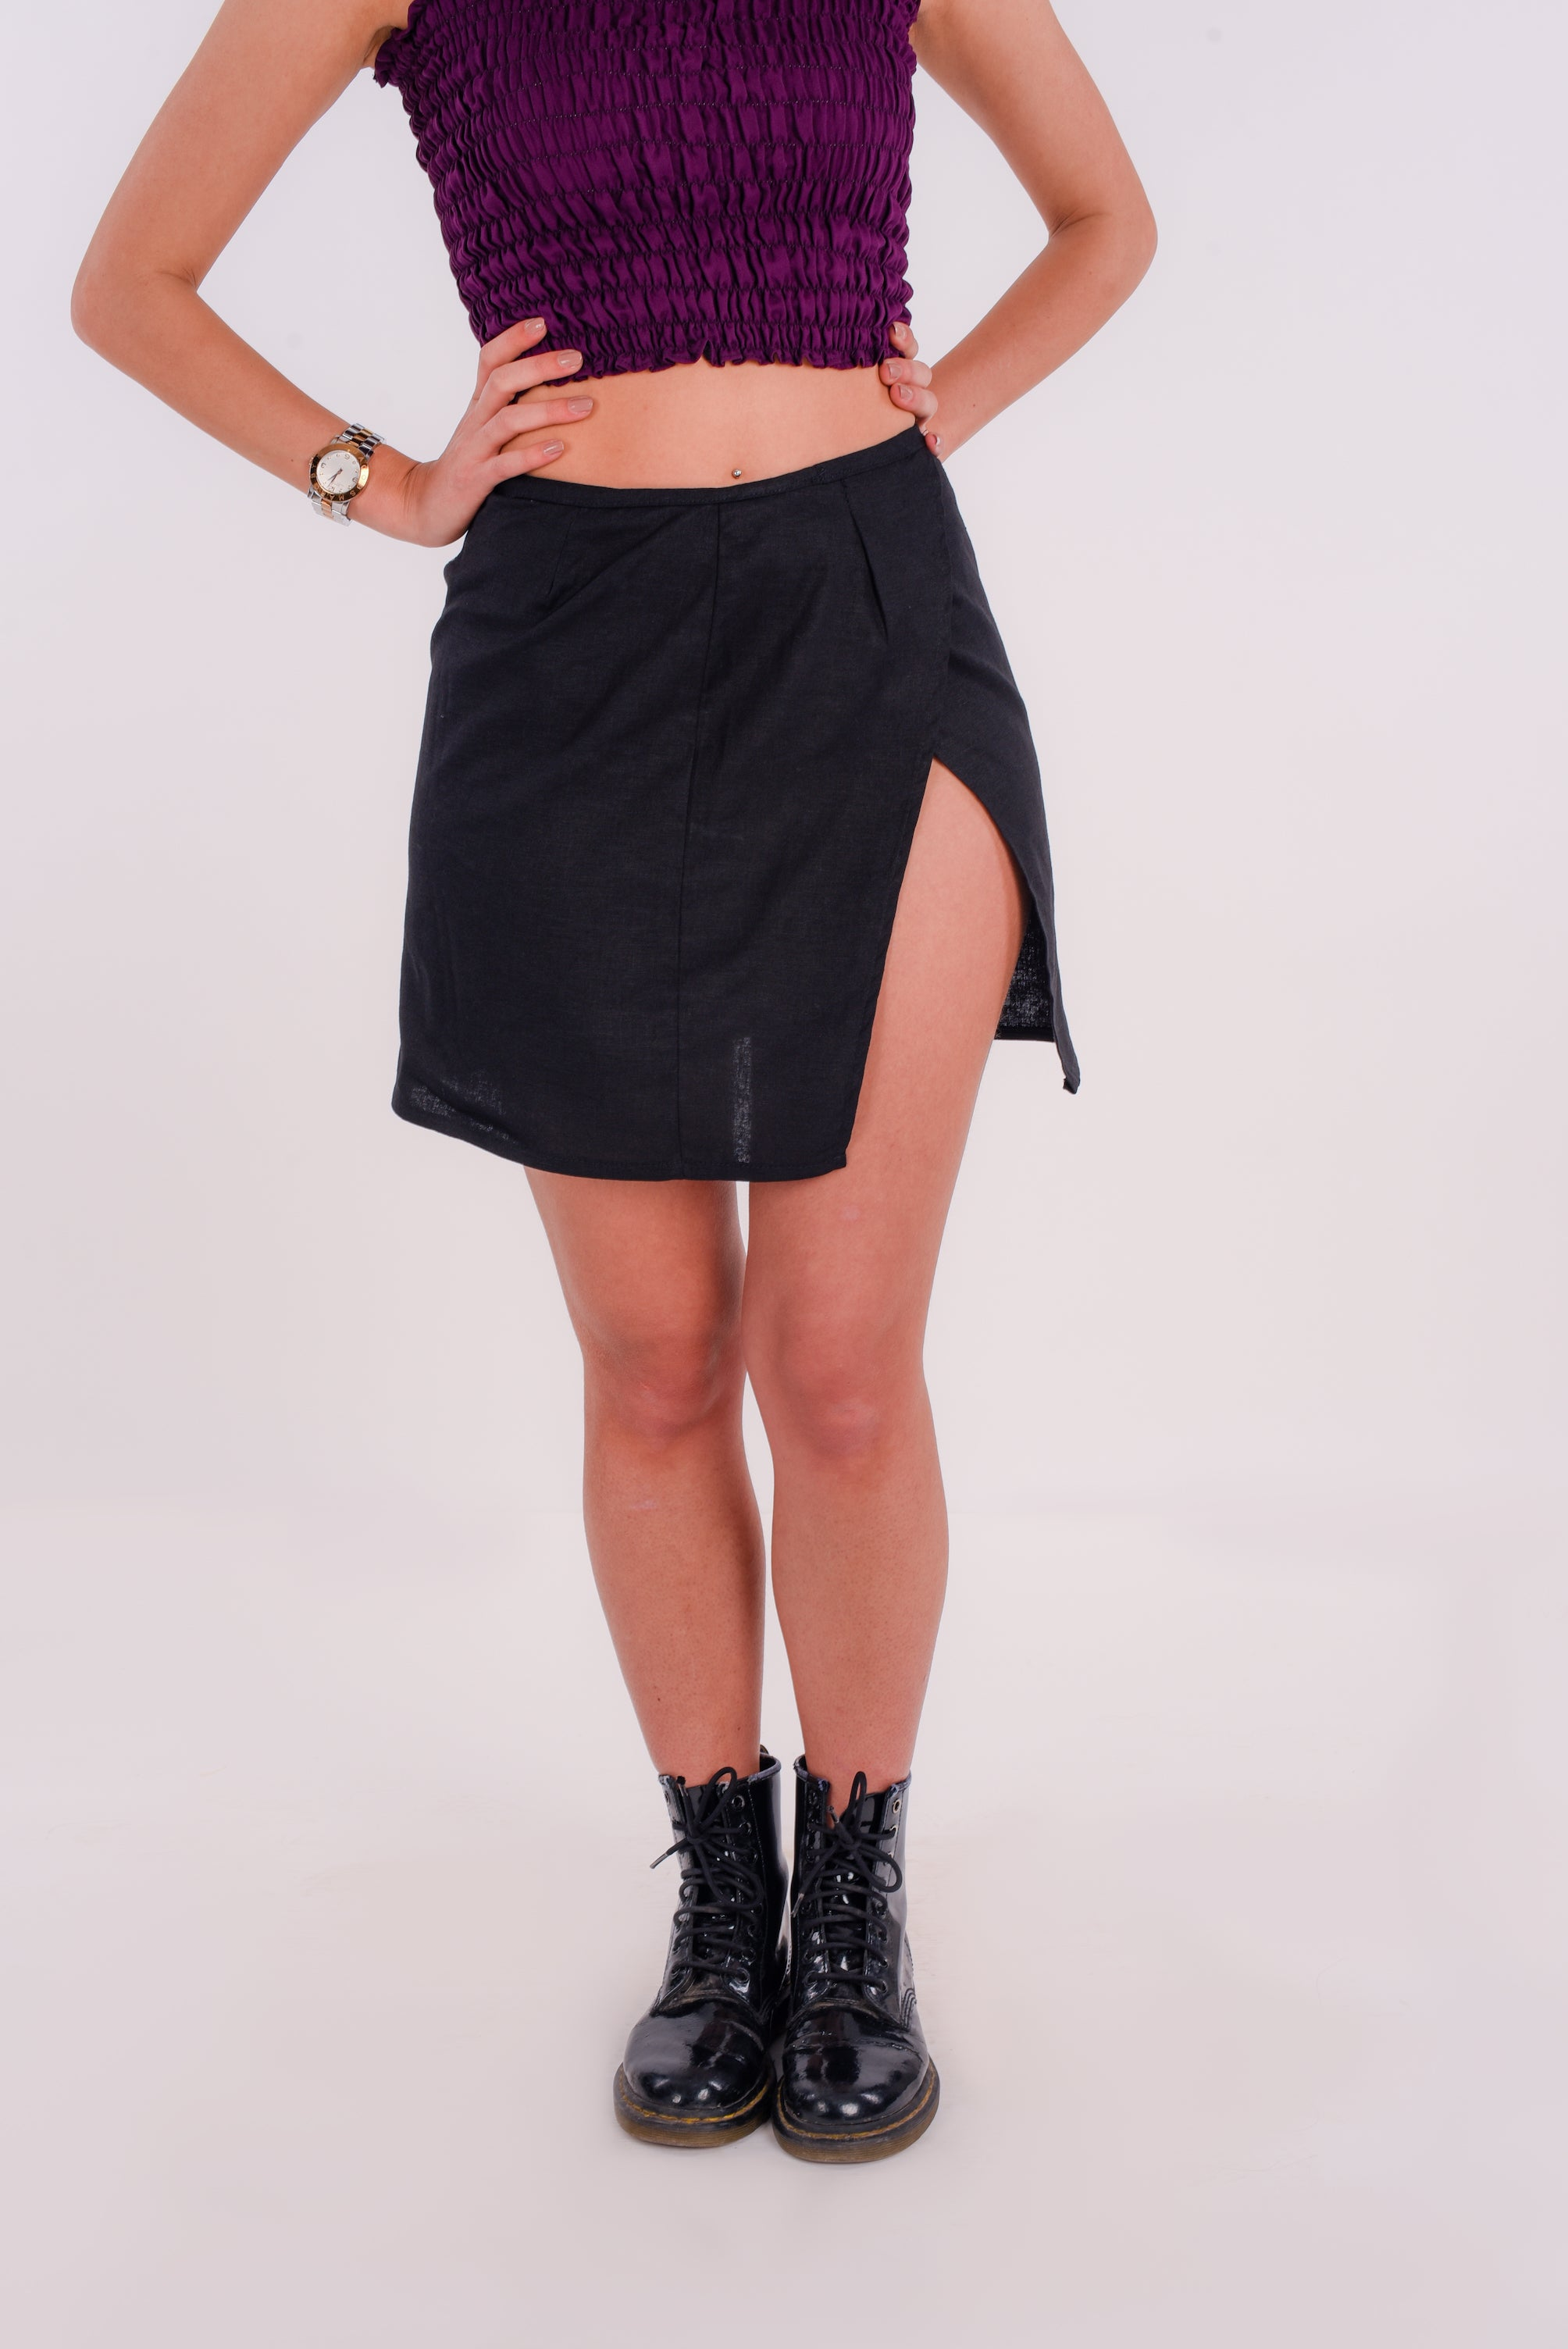 Wrapped skirt in black